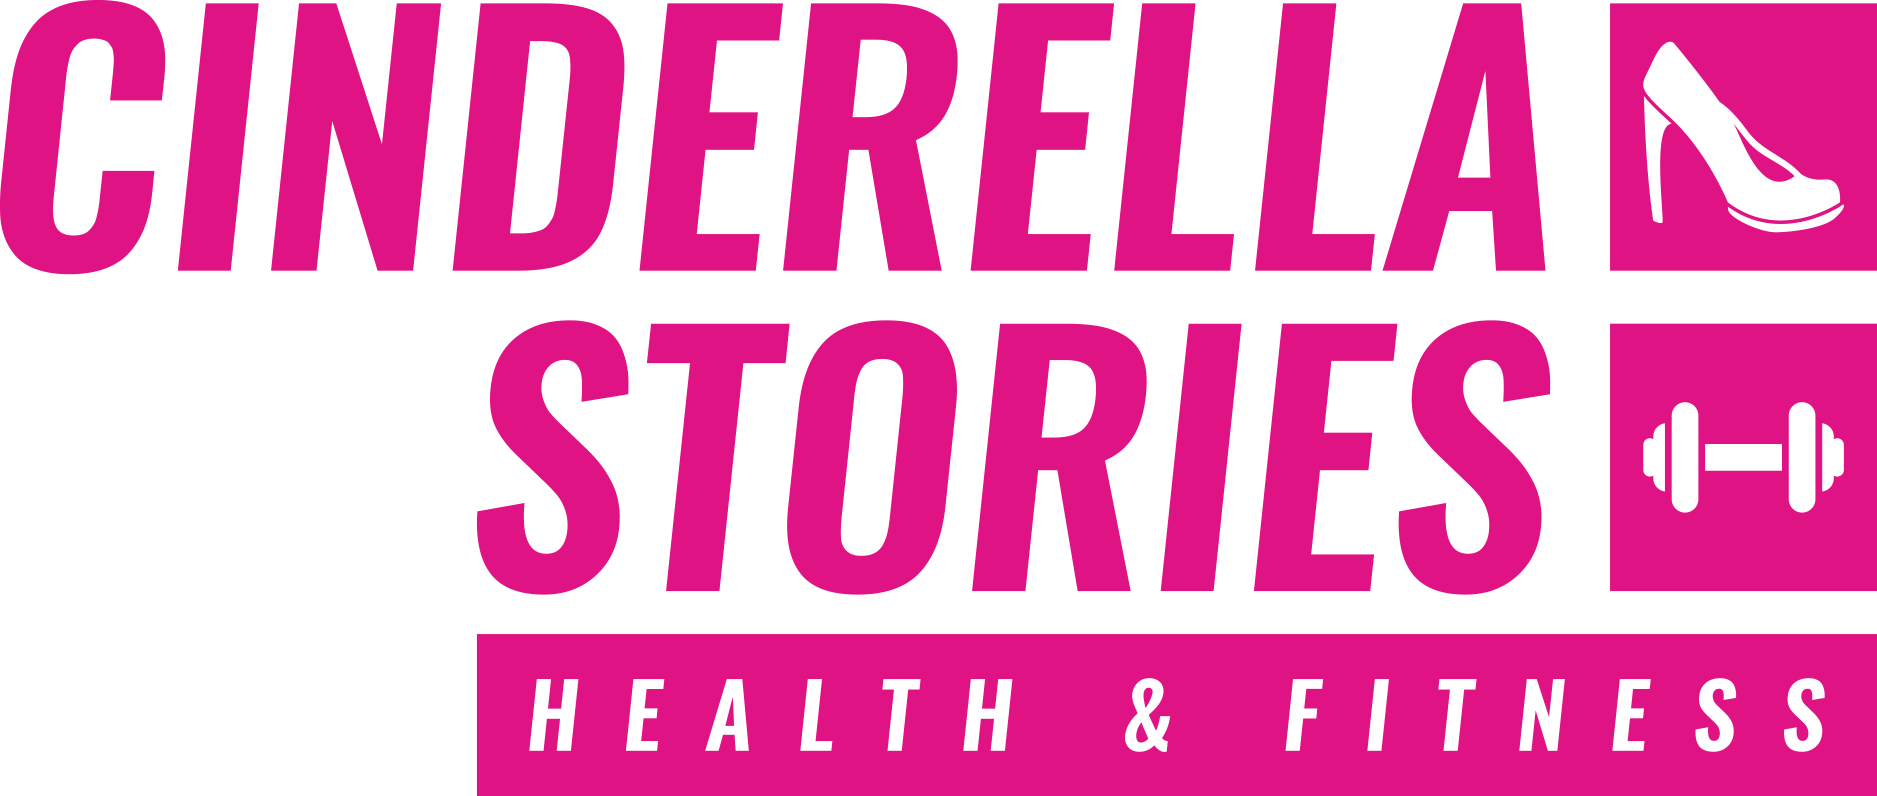 Cinderella Stories Health and Fitness